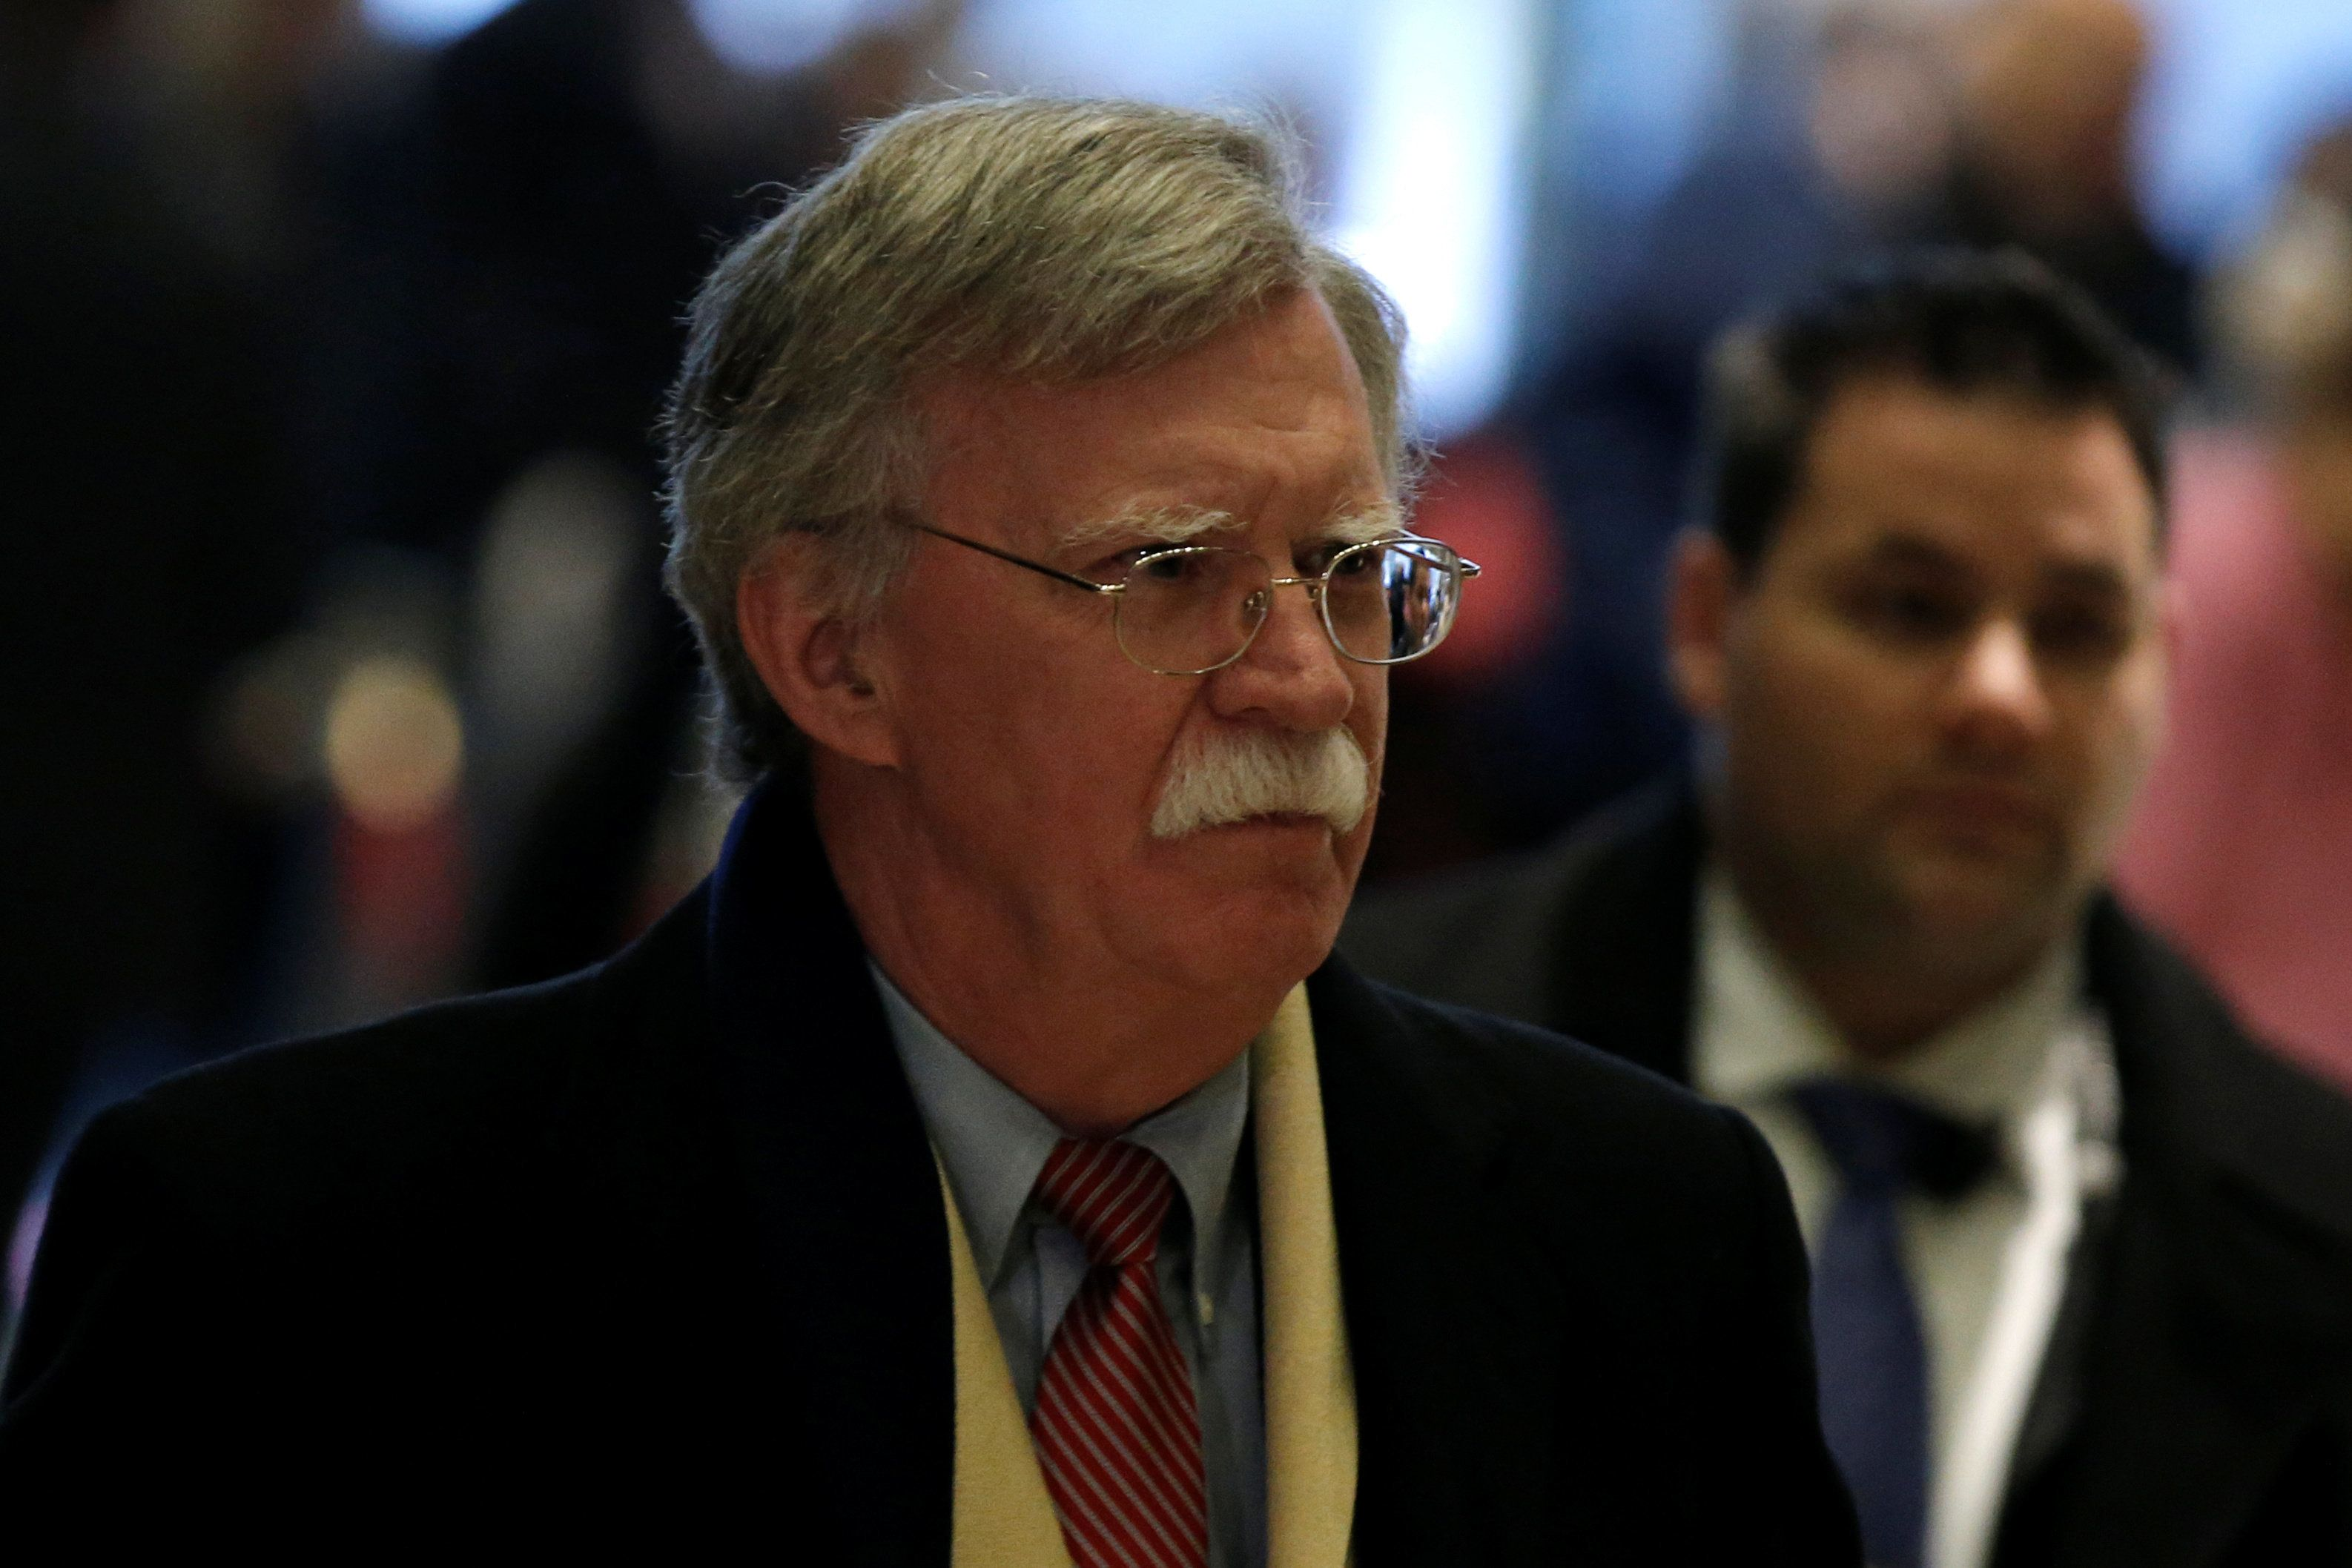 Former U.S. Ambassador to the United Nations John Bolton arrives for a meeting with U.S. President-elect Donald Trump at Trump Tower in New York, U.S., December 2, 2016.   REUTERS/Mike Segar